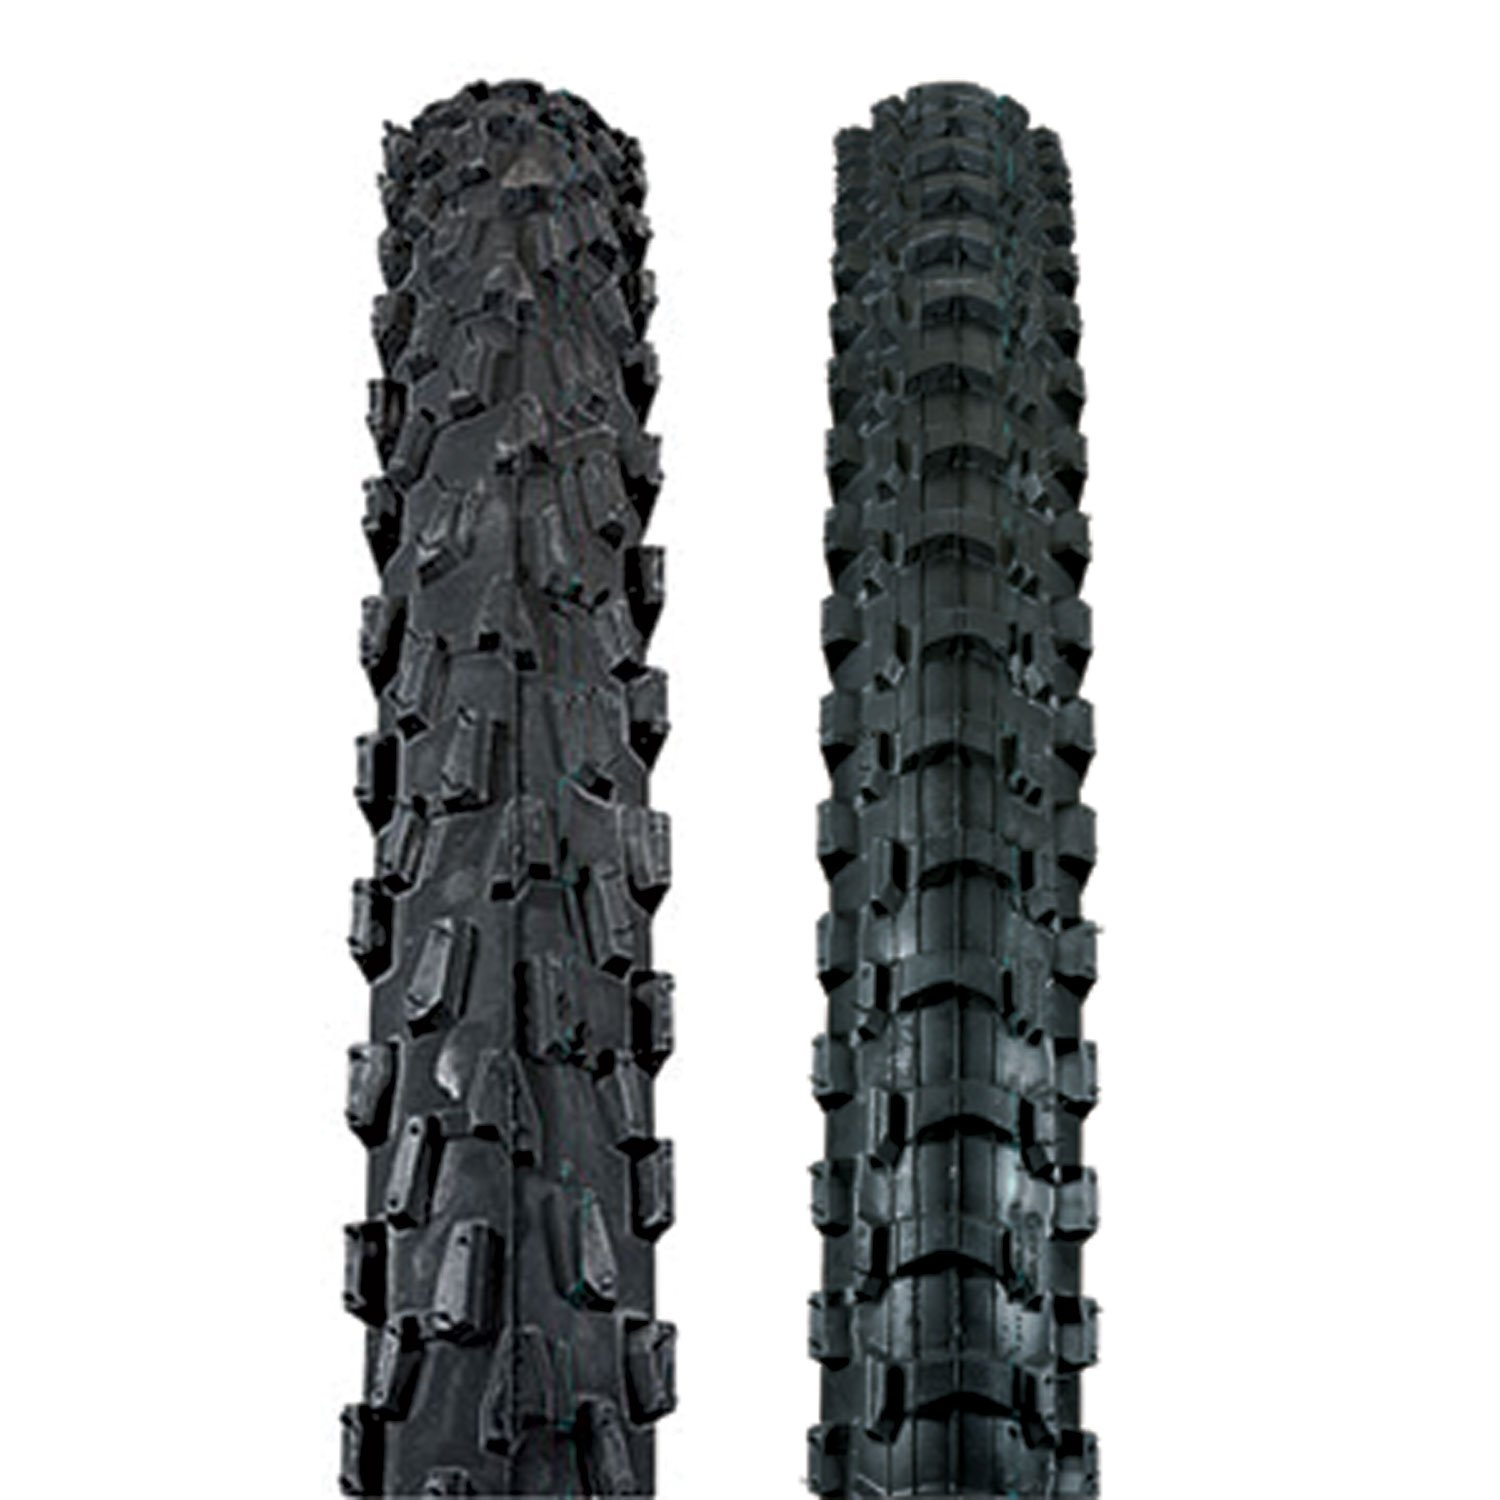 The WTB VelociRaptor Mountain Tire, A Special Edition